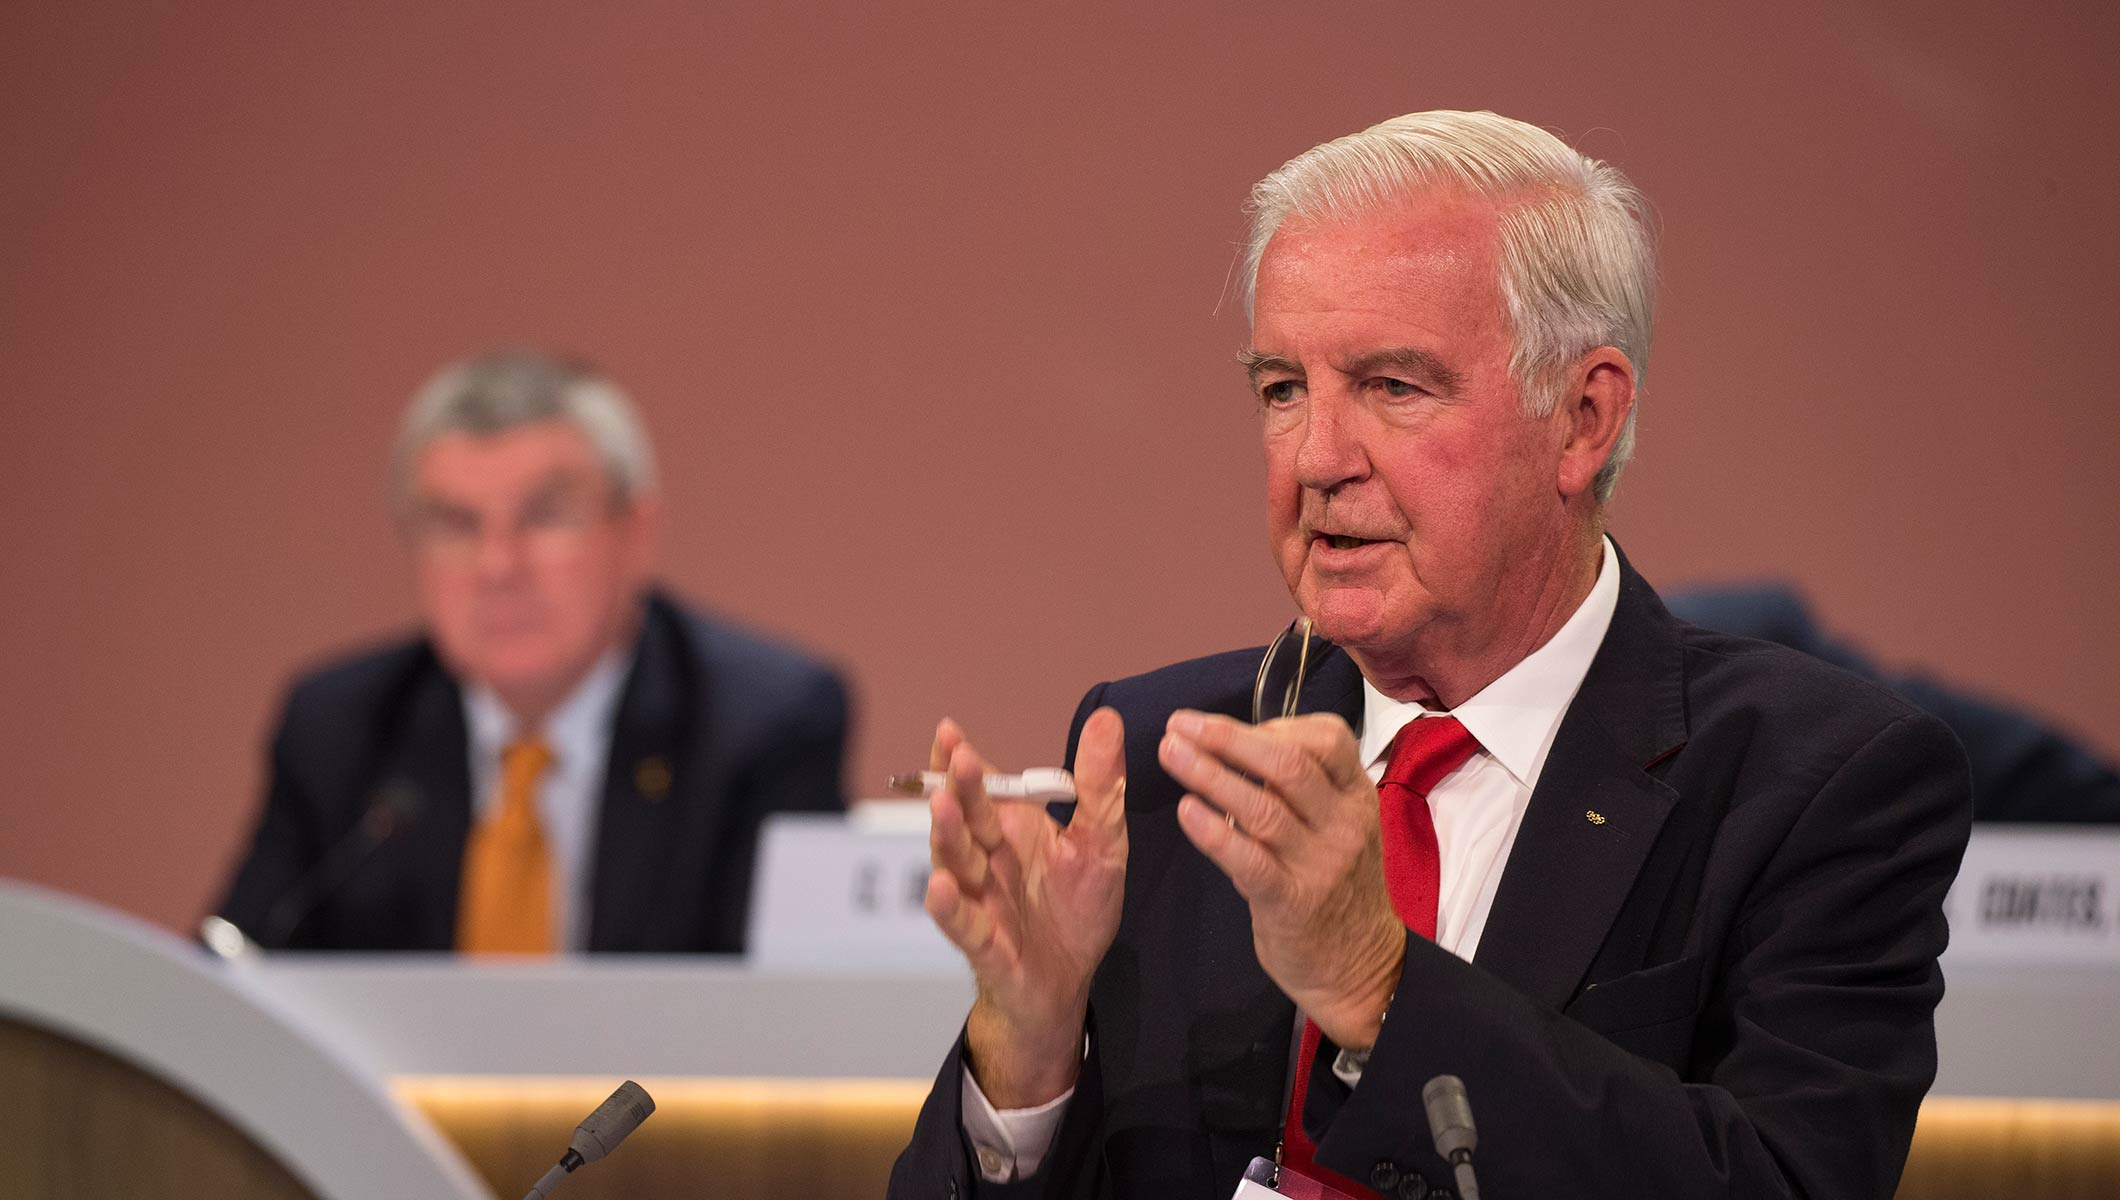 IOC Session Lima, Sir Craig Reedie, President of the World Anti-Doping Agency (WADA), Sir Craig Reedie